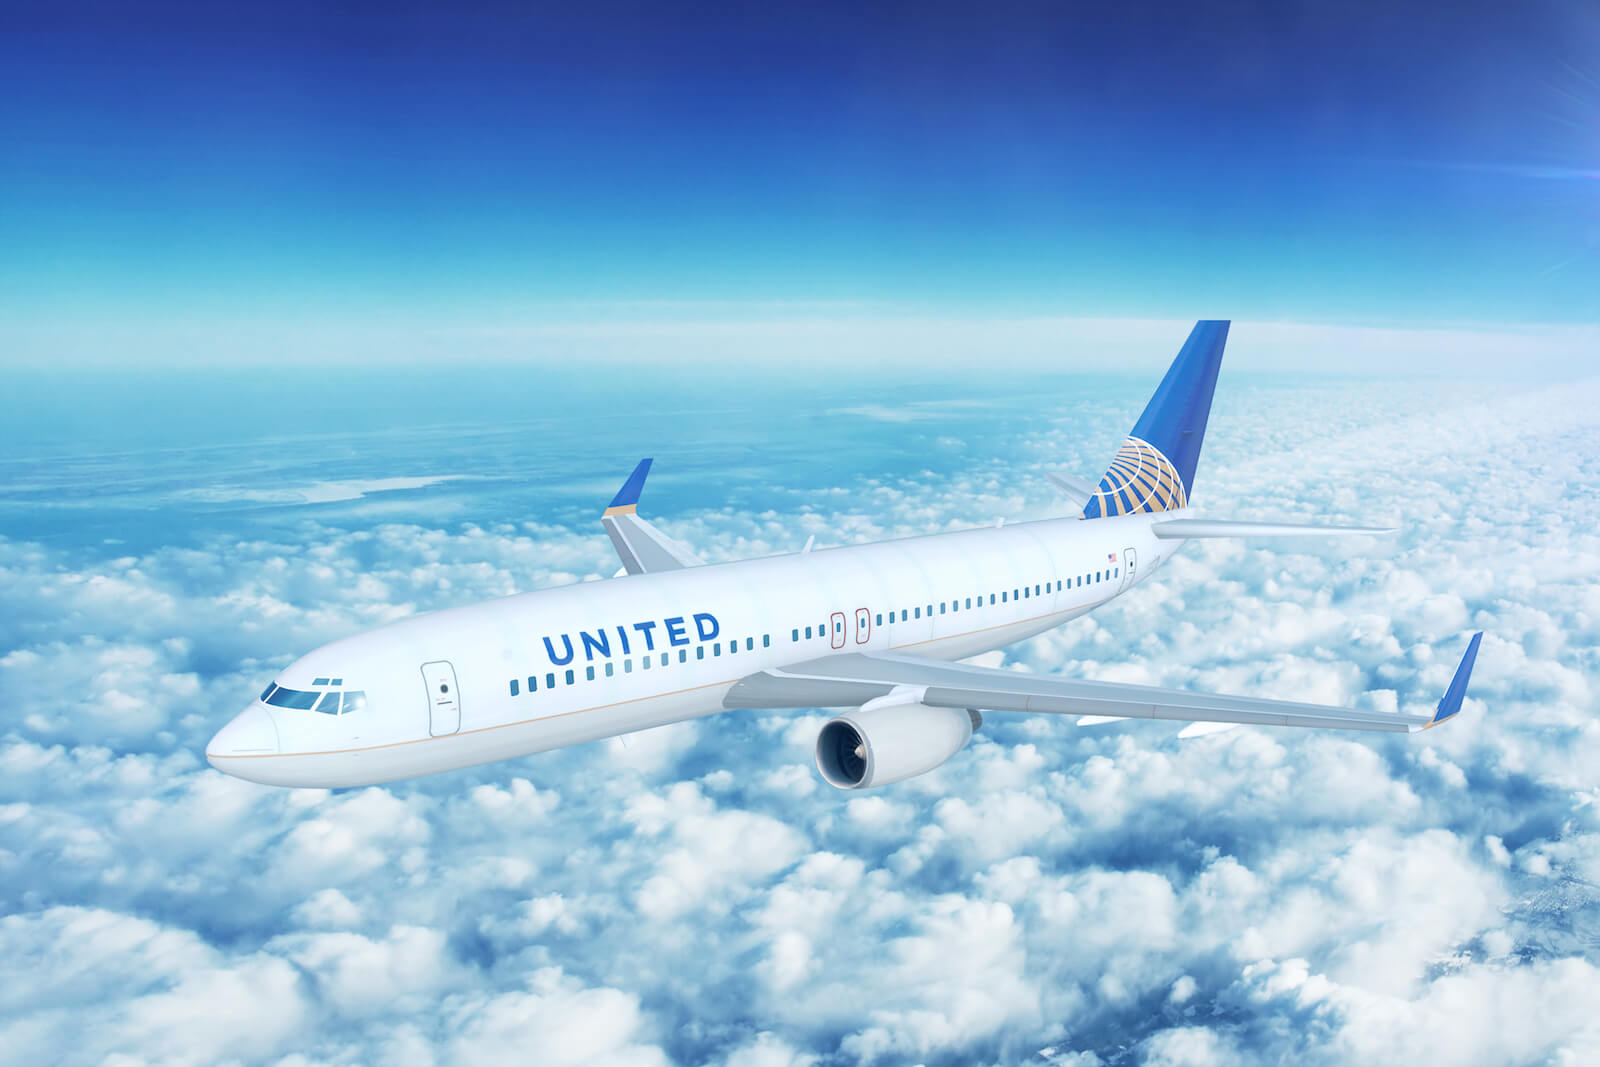 Last day to get the 65,000-mile United Explorer Card offer